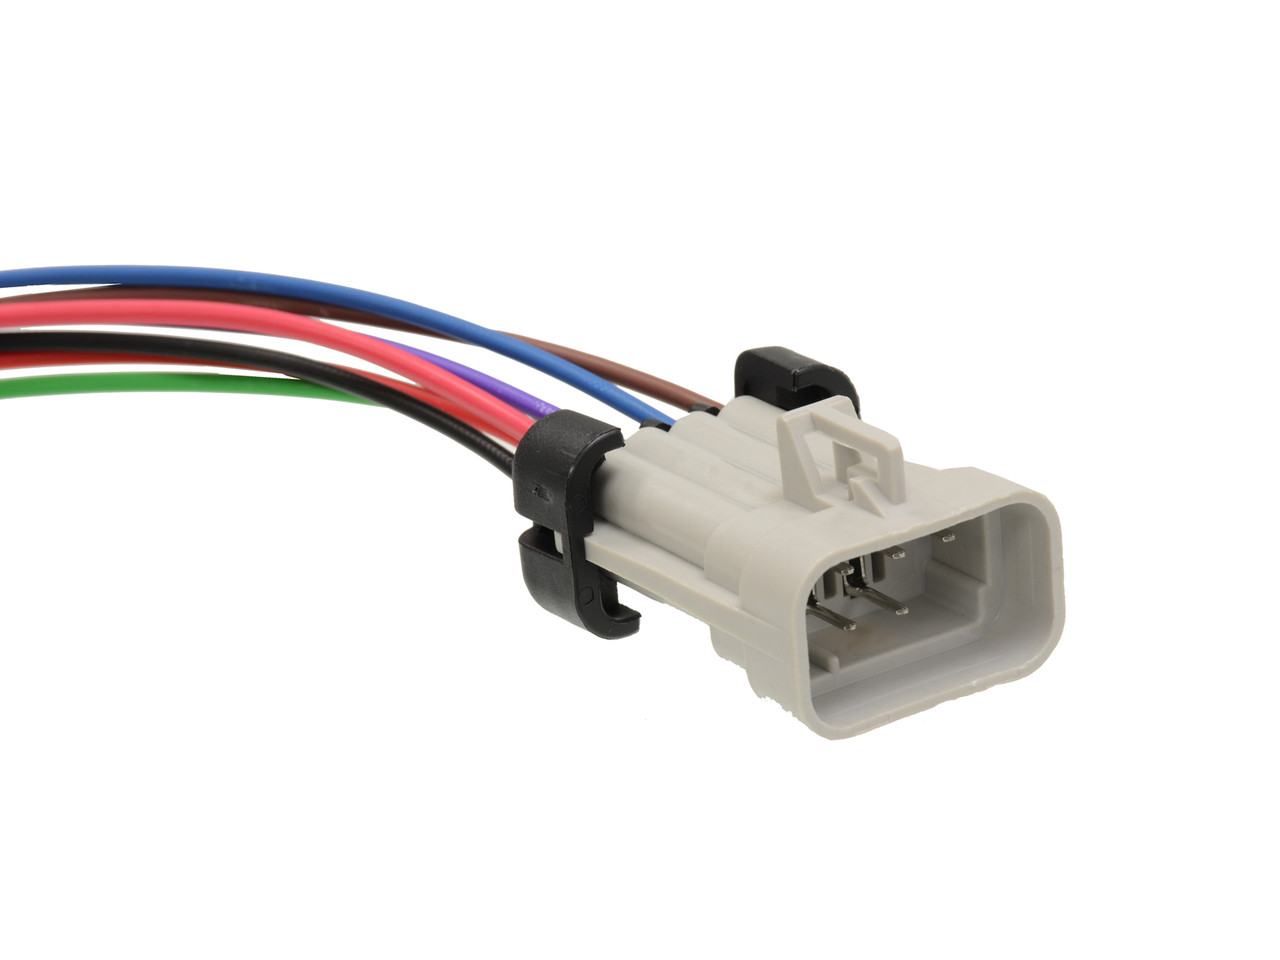 gm ls9 coil wiring on wiring diagram female ignition coil harness connector for gm ls1 ls2 ls3 ls7 ls6 gm hei module wiring